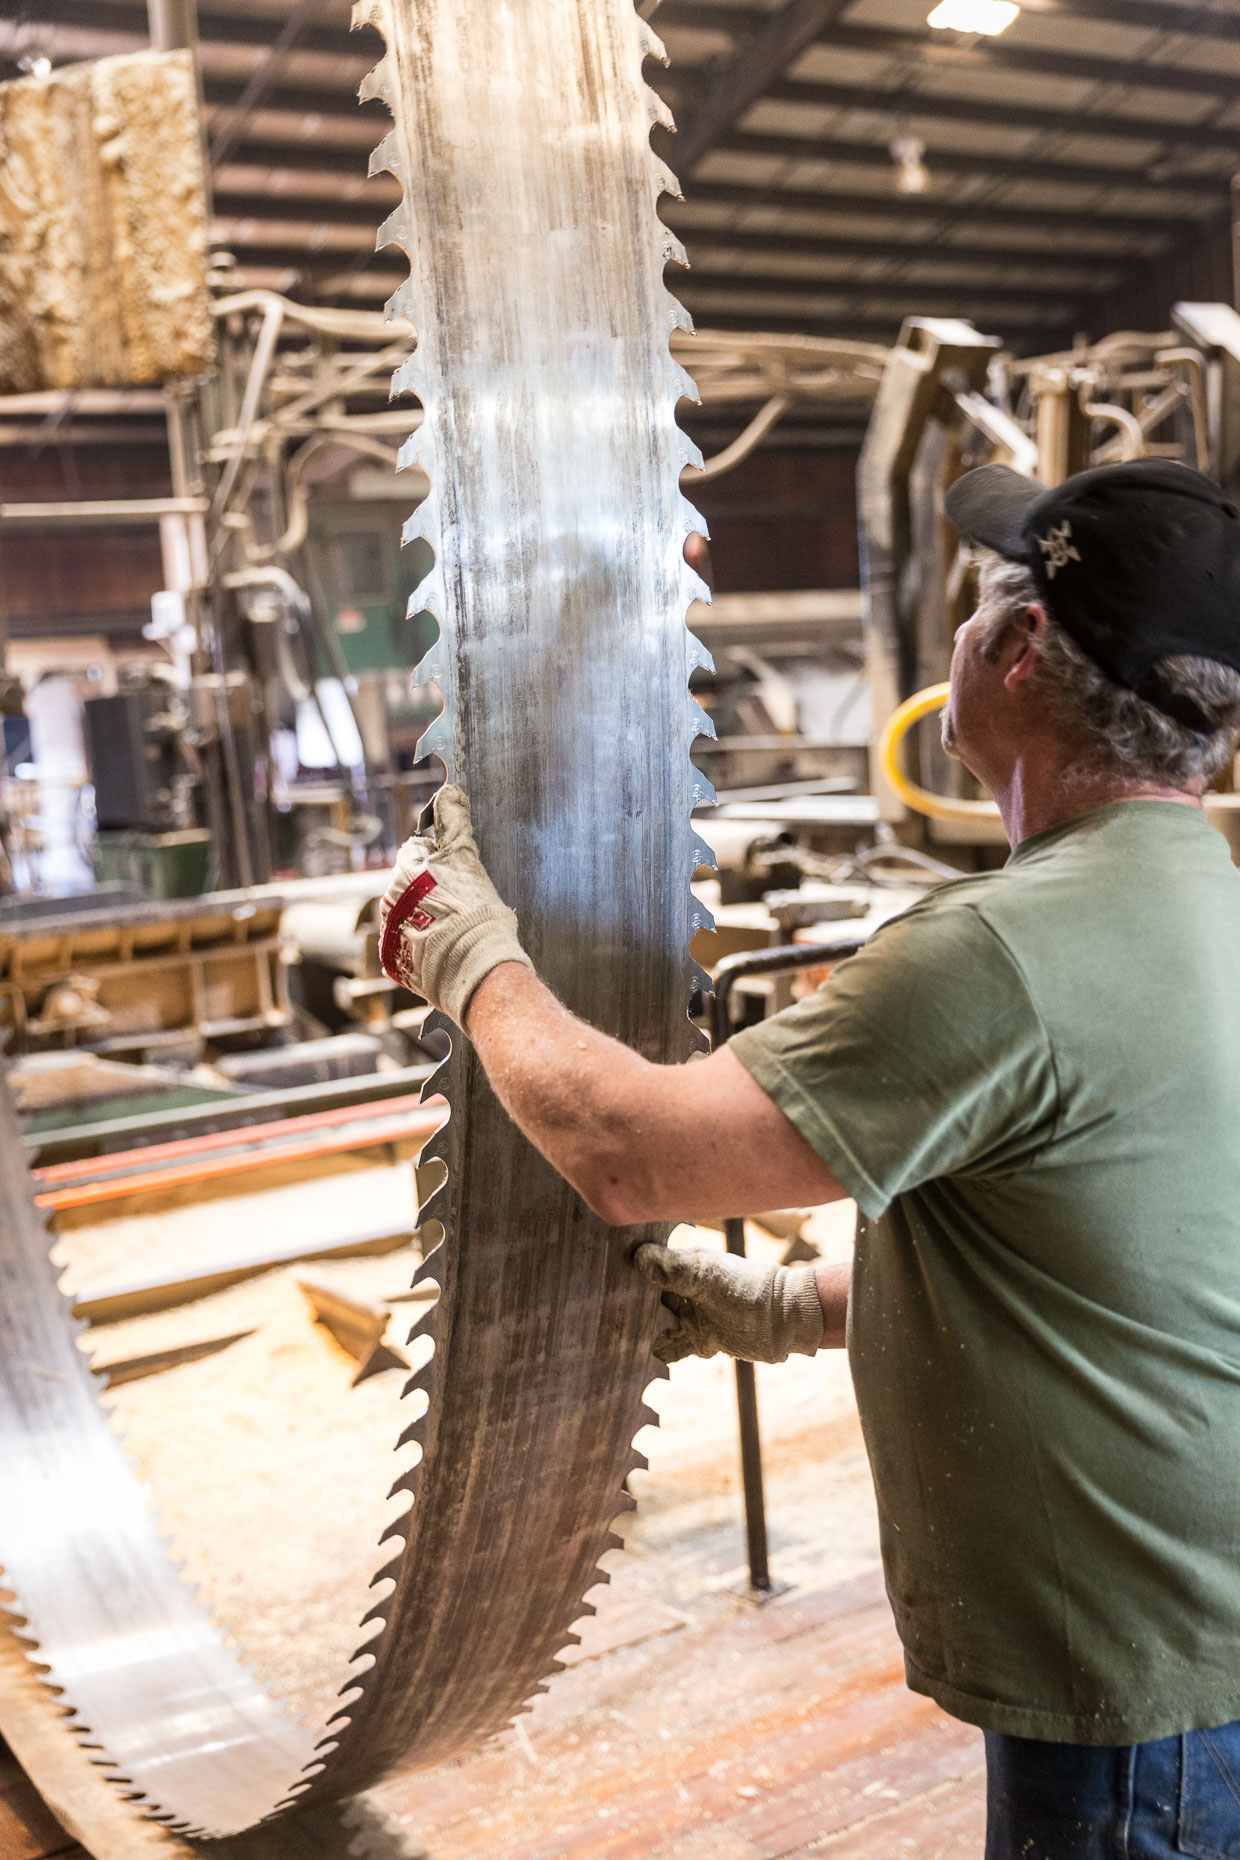 Man worker in lumber mill working with large band saw blade, removing from saw to be sharpened, Malheur Lumber Company mill in John Day, Oregon by David Zaitz.